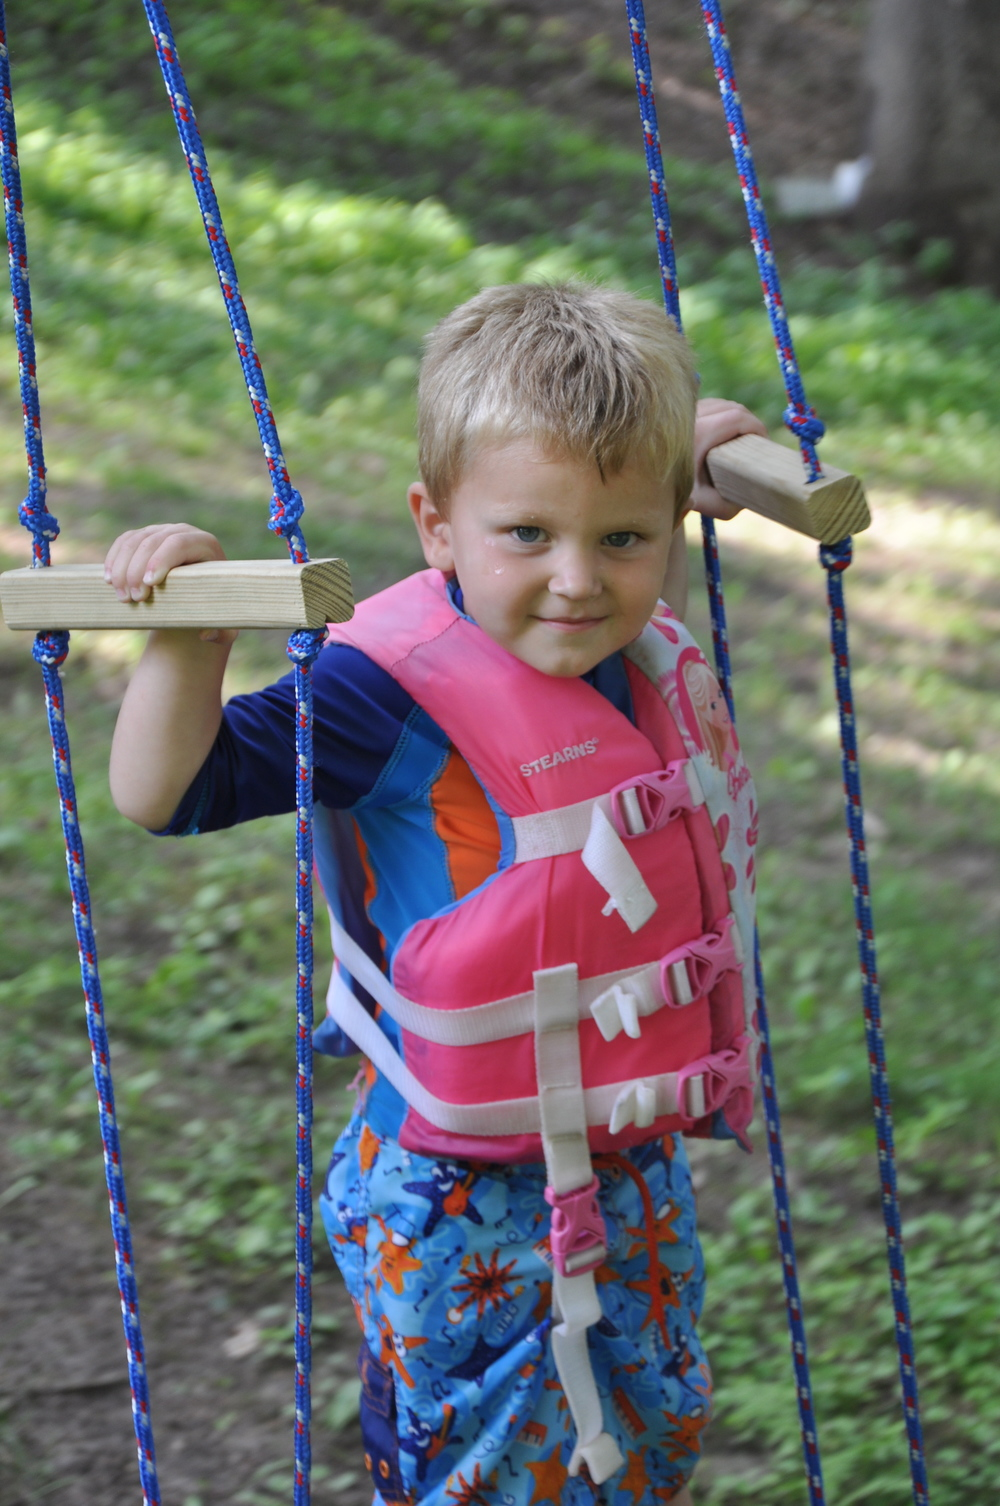 We hung the swing in a rather large tree and spaced the handles for older kids. Johnnie age 3 had little trouble get the hang of the skateboard swing.